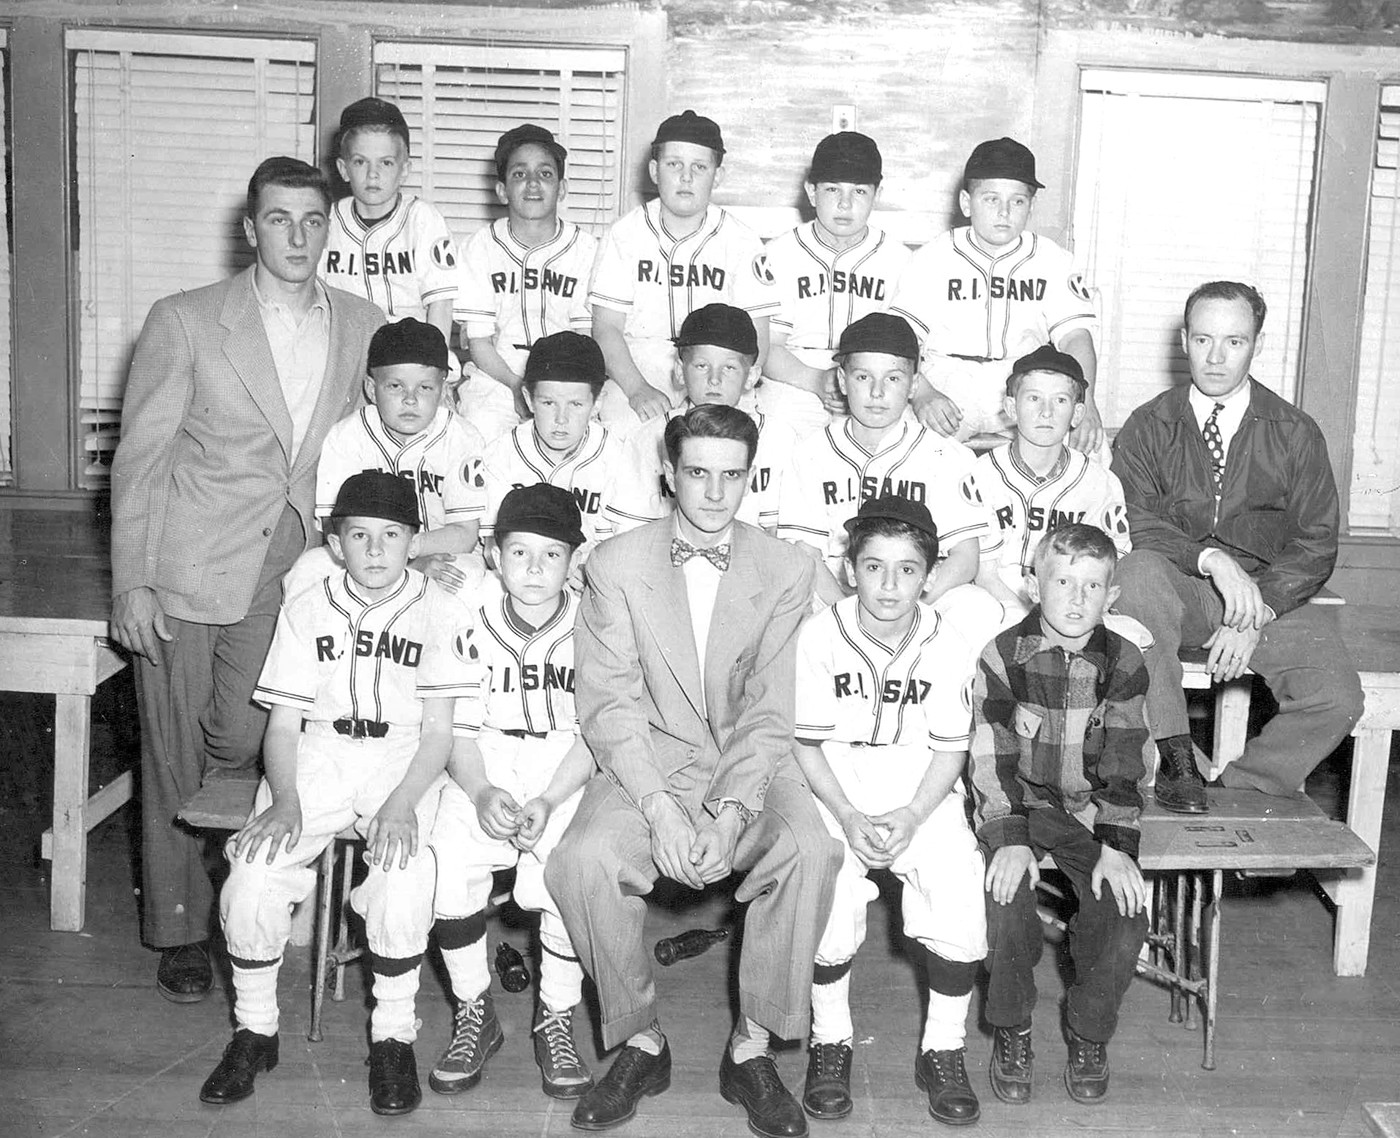 GREAT COACHING KEY TO SUCCESS: John Kindl, an 11 year-old at the time, is seated second from the left, bottom row, arguably the smallest player on the team. He said he had great coaches in little league.